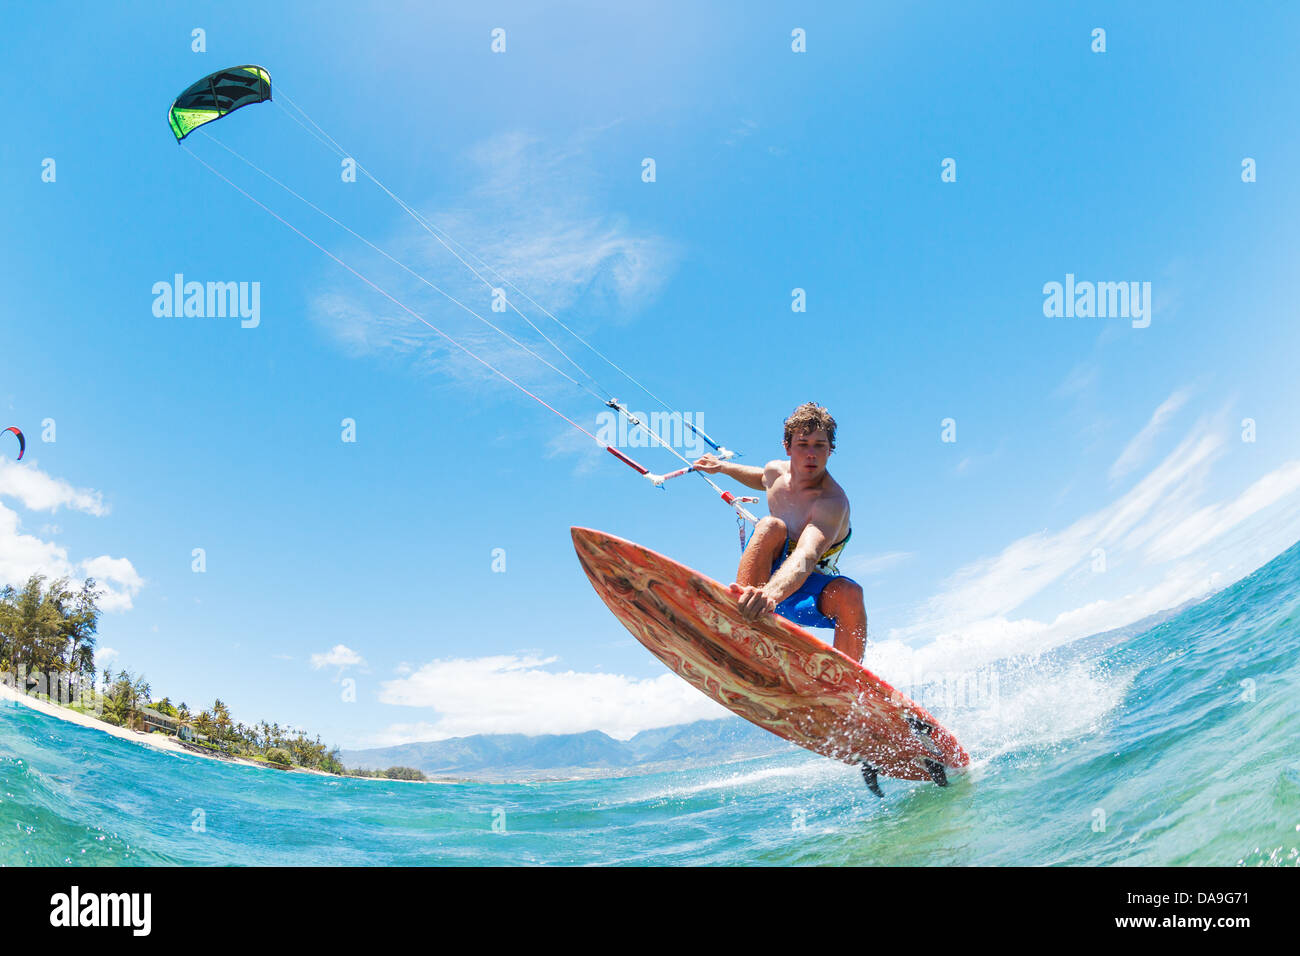 Kite Surfing, Fun in the Ocean, Extreme Sport  - Stock Image